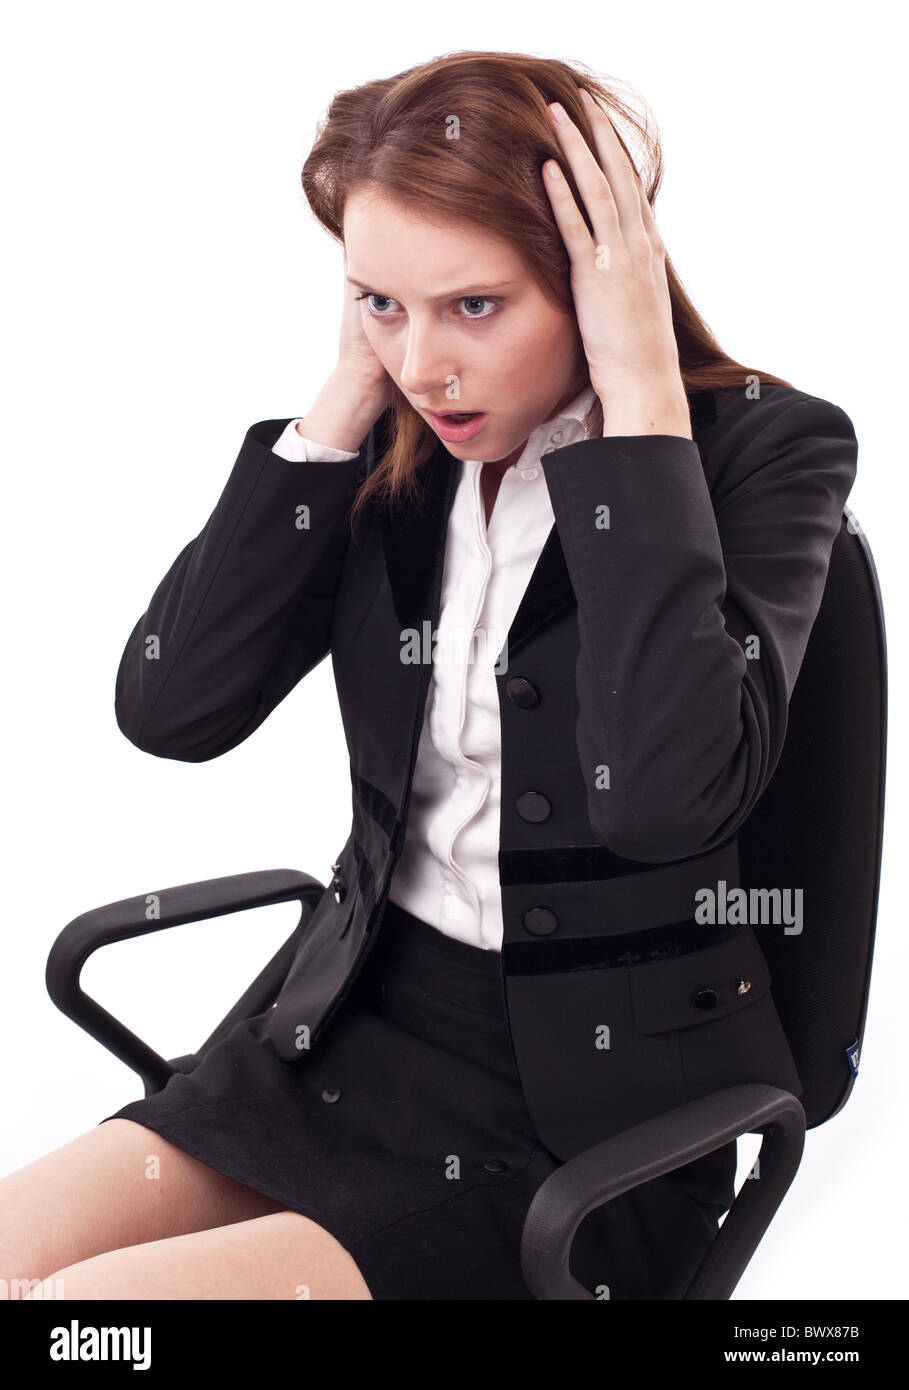 Depressed young woman sitting on a chair, clutches her head. - Stock Image